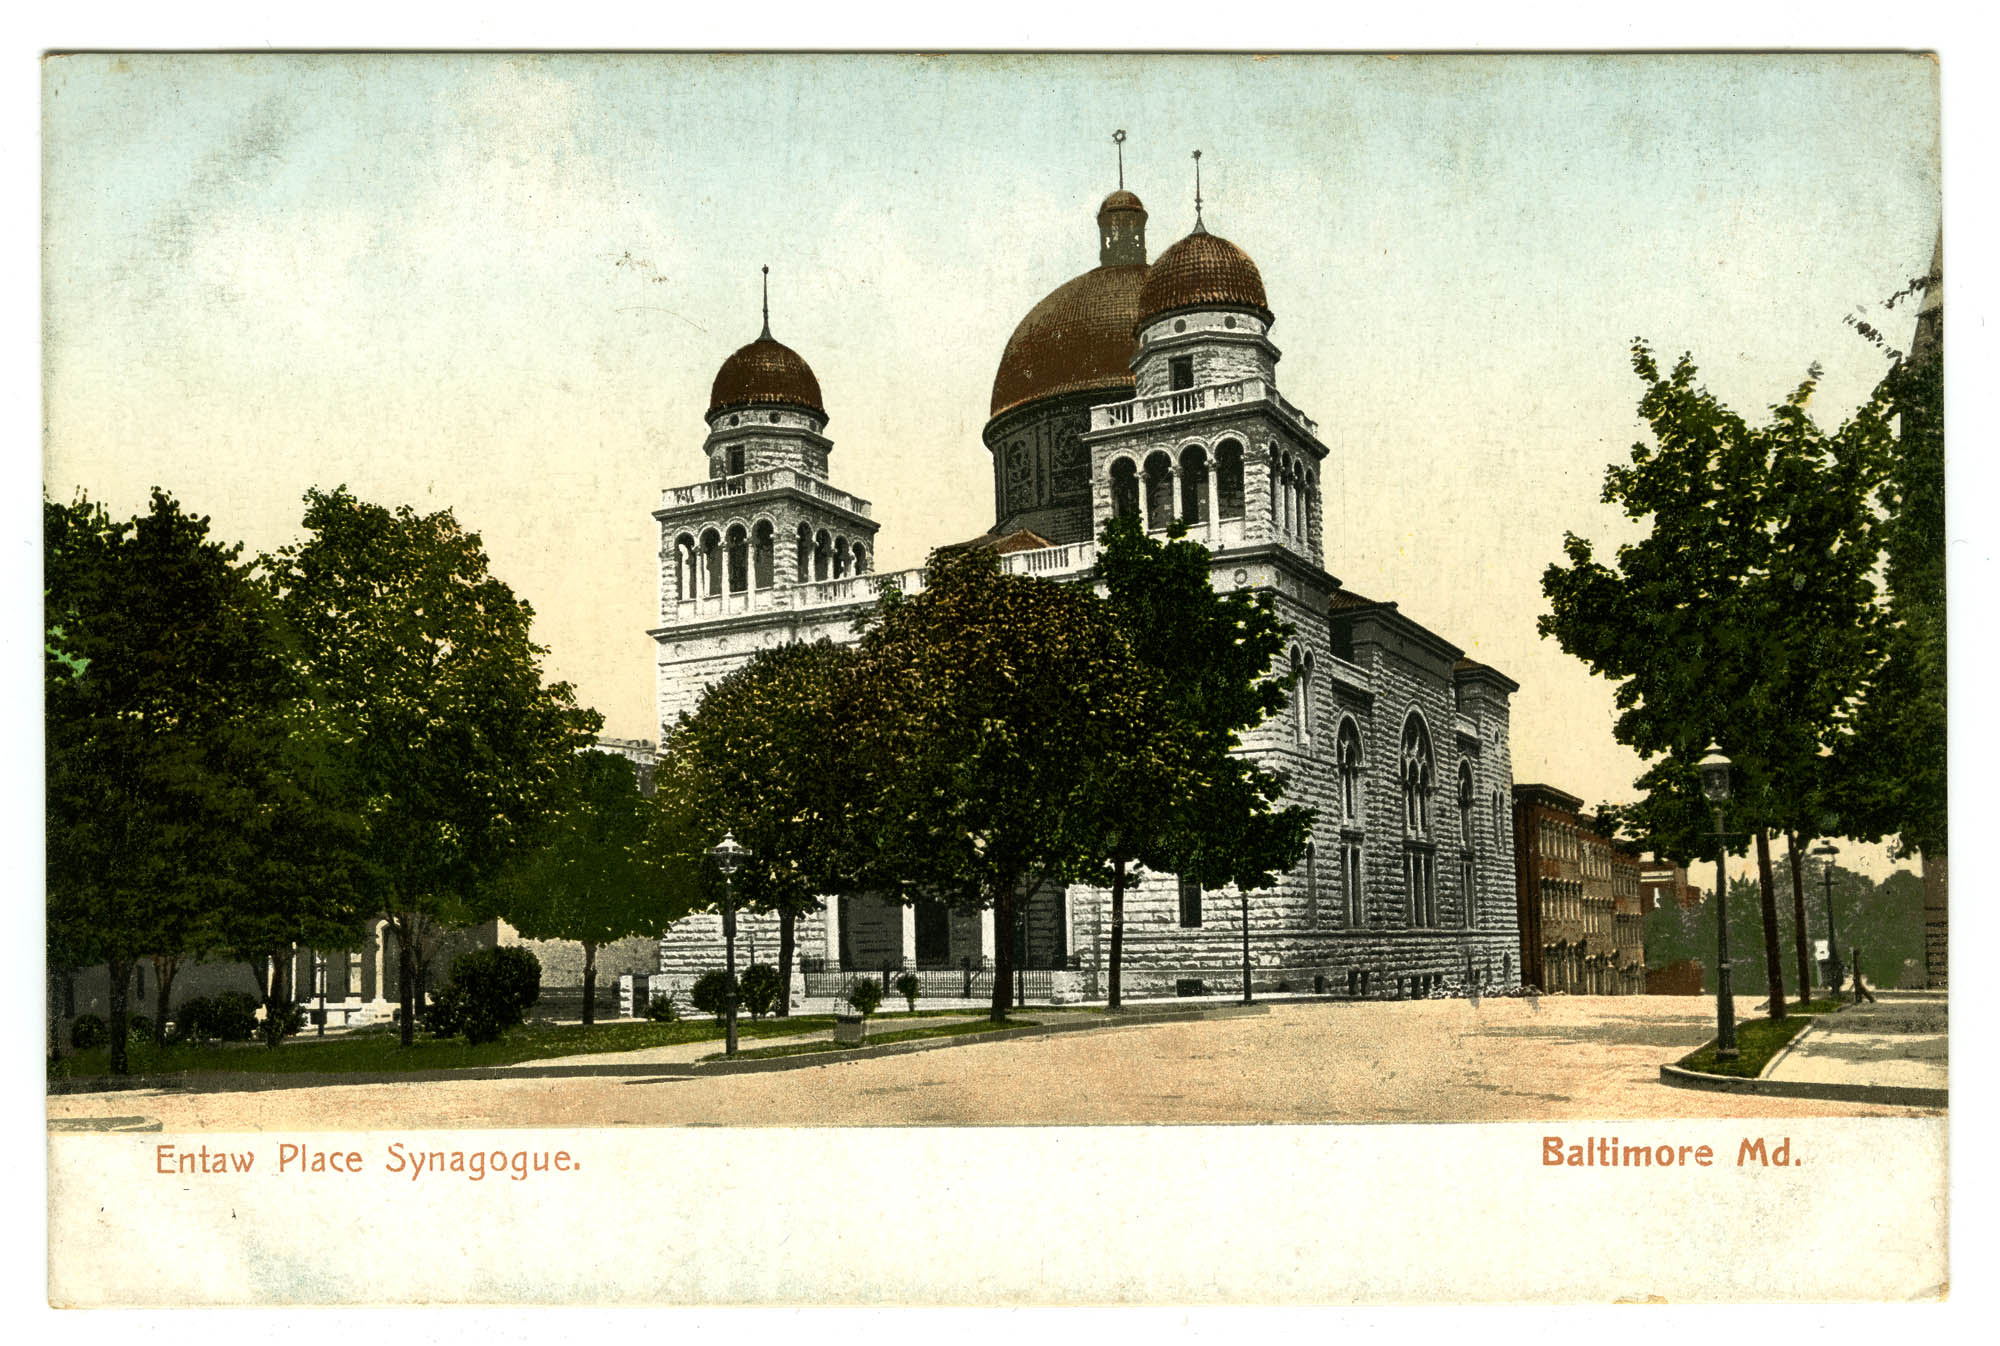 Eutaw Place Synagogue. Baltimore, Md.